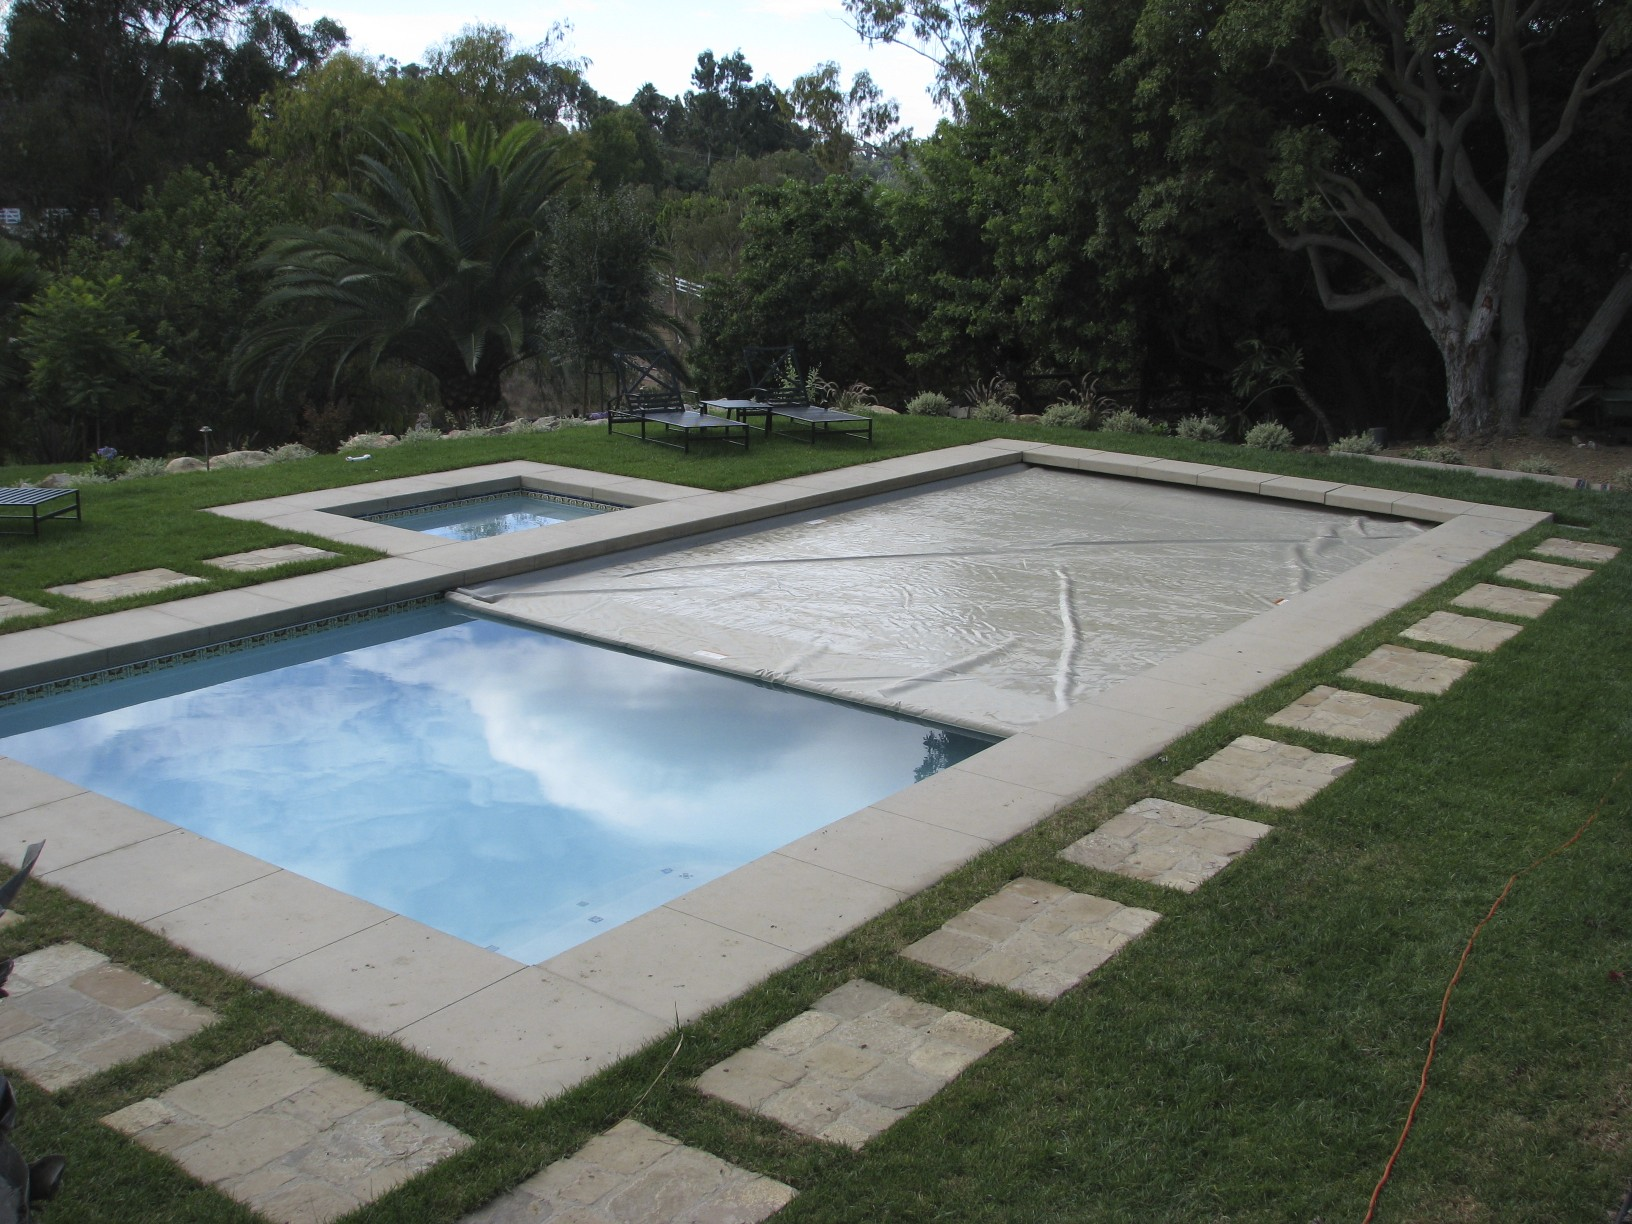 Automatic Safety Pool Covers Poolsafe Pool Fences And Covers